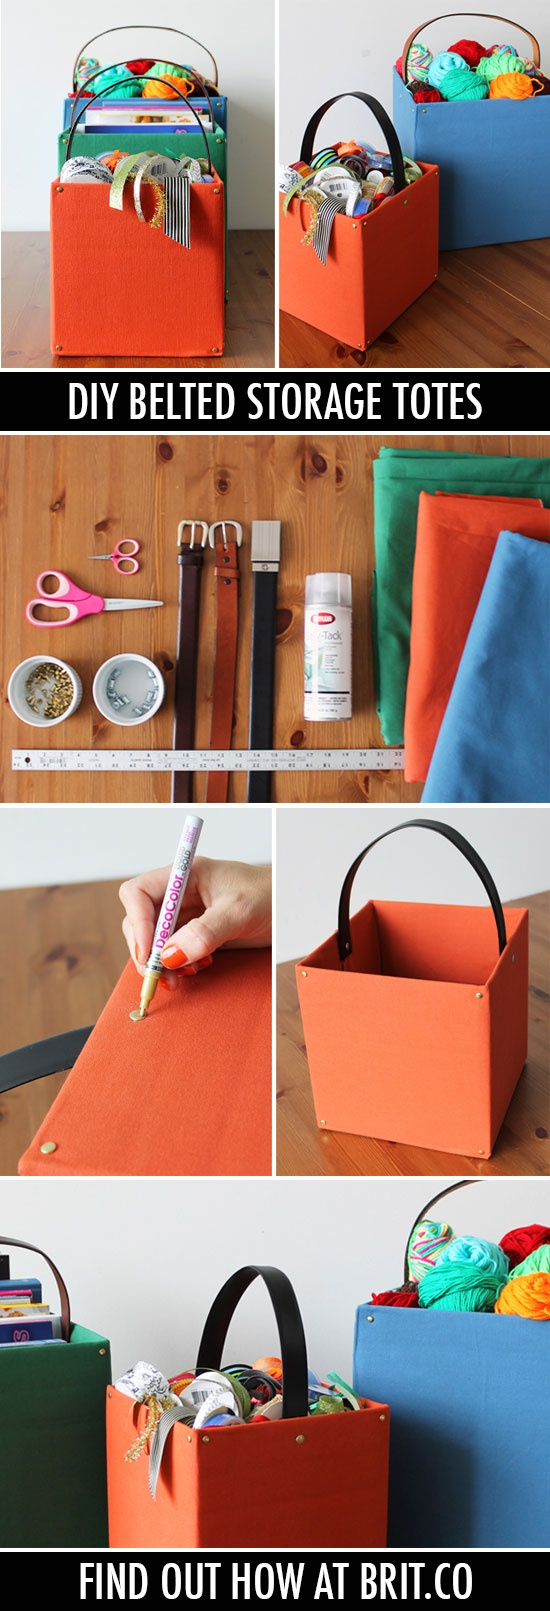 42 best diy cardboard images on pinterest cartonnage crafts and